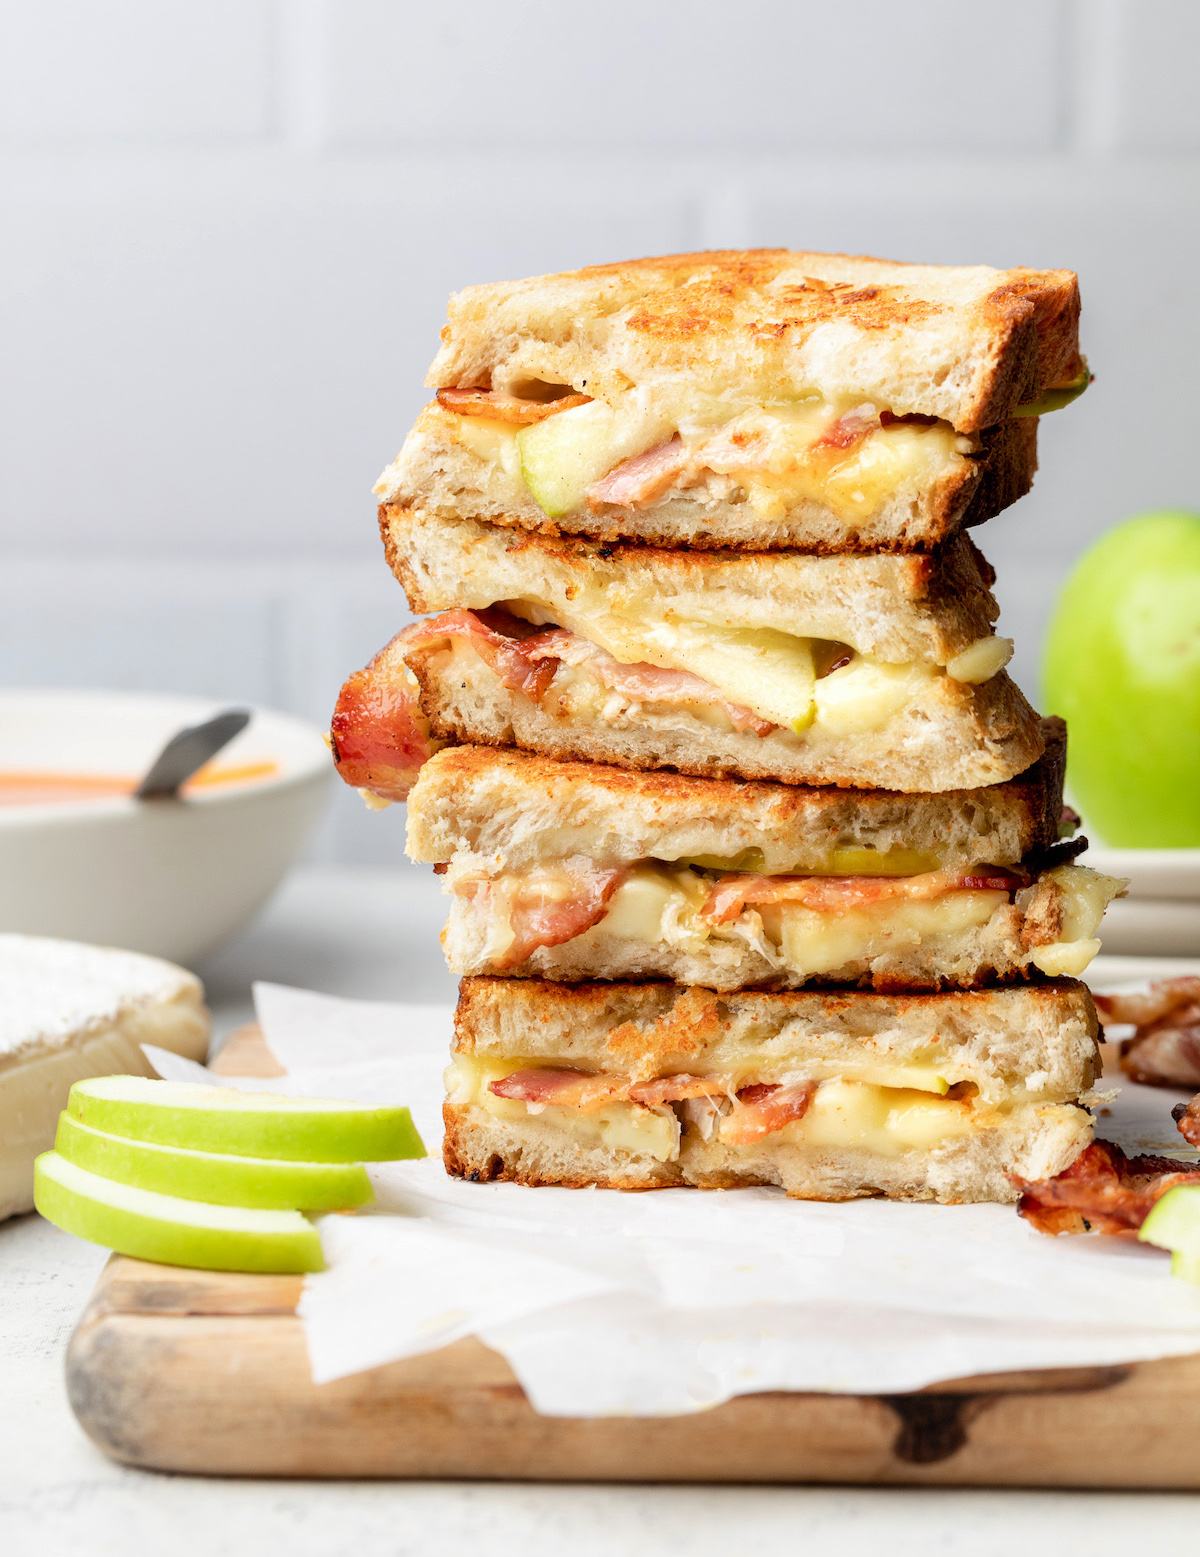 A stack of sandwiches on a wooden cutting board in front of a white surface.